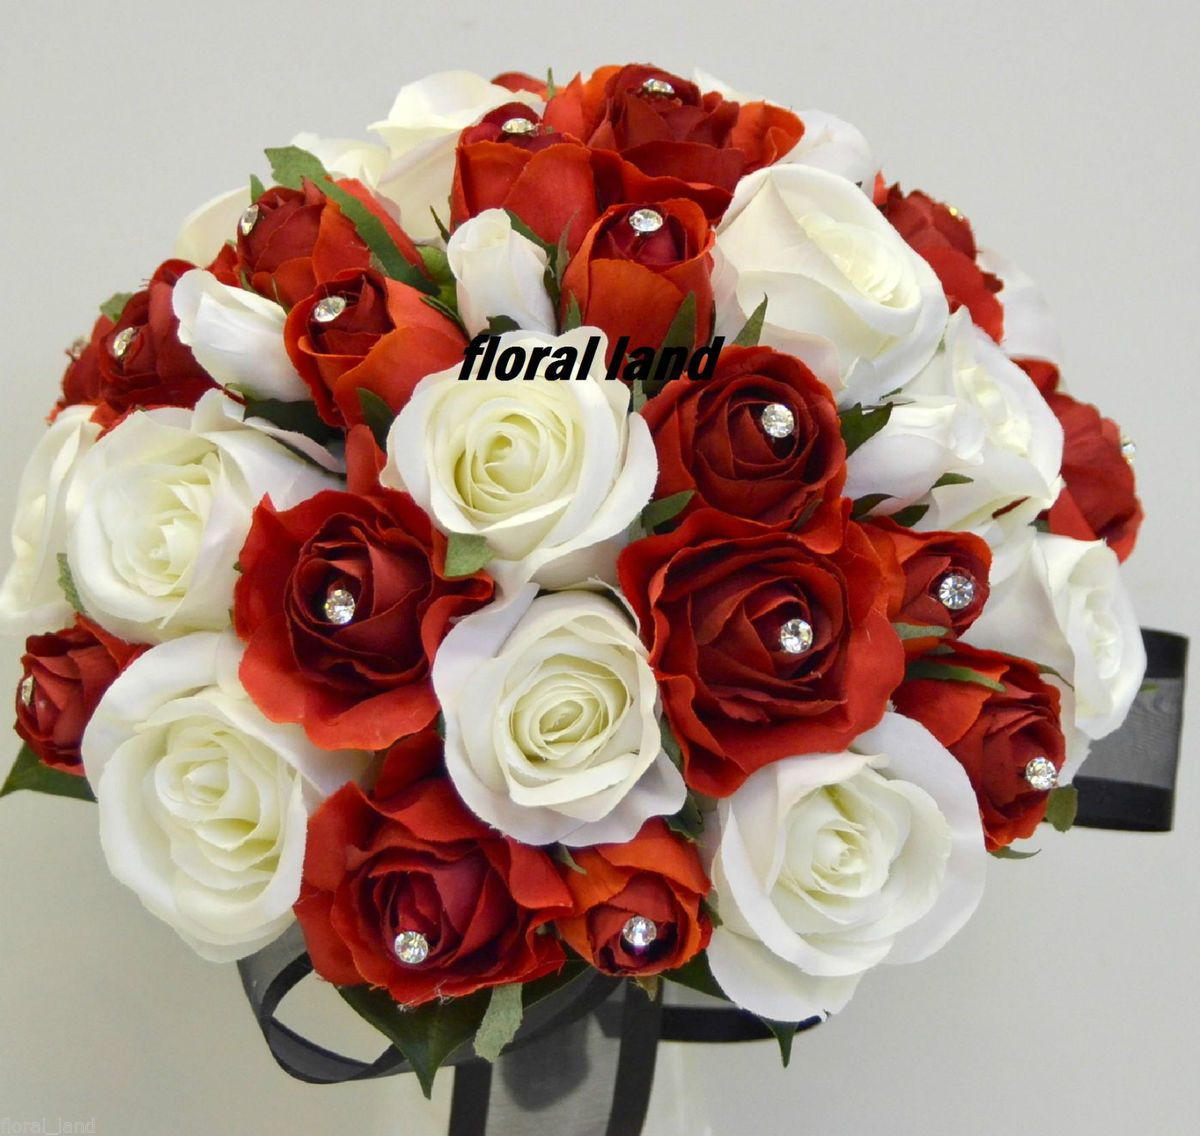 Bouquet of fake flowers in red silk flower wedding bouquet red bouquet of fake flowers in red silk flower wedding bouquet red white rose diamontie posy izmirmasajfo Images